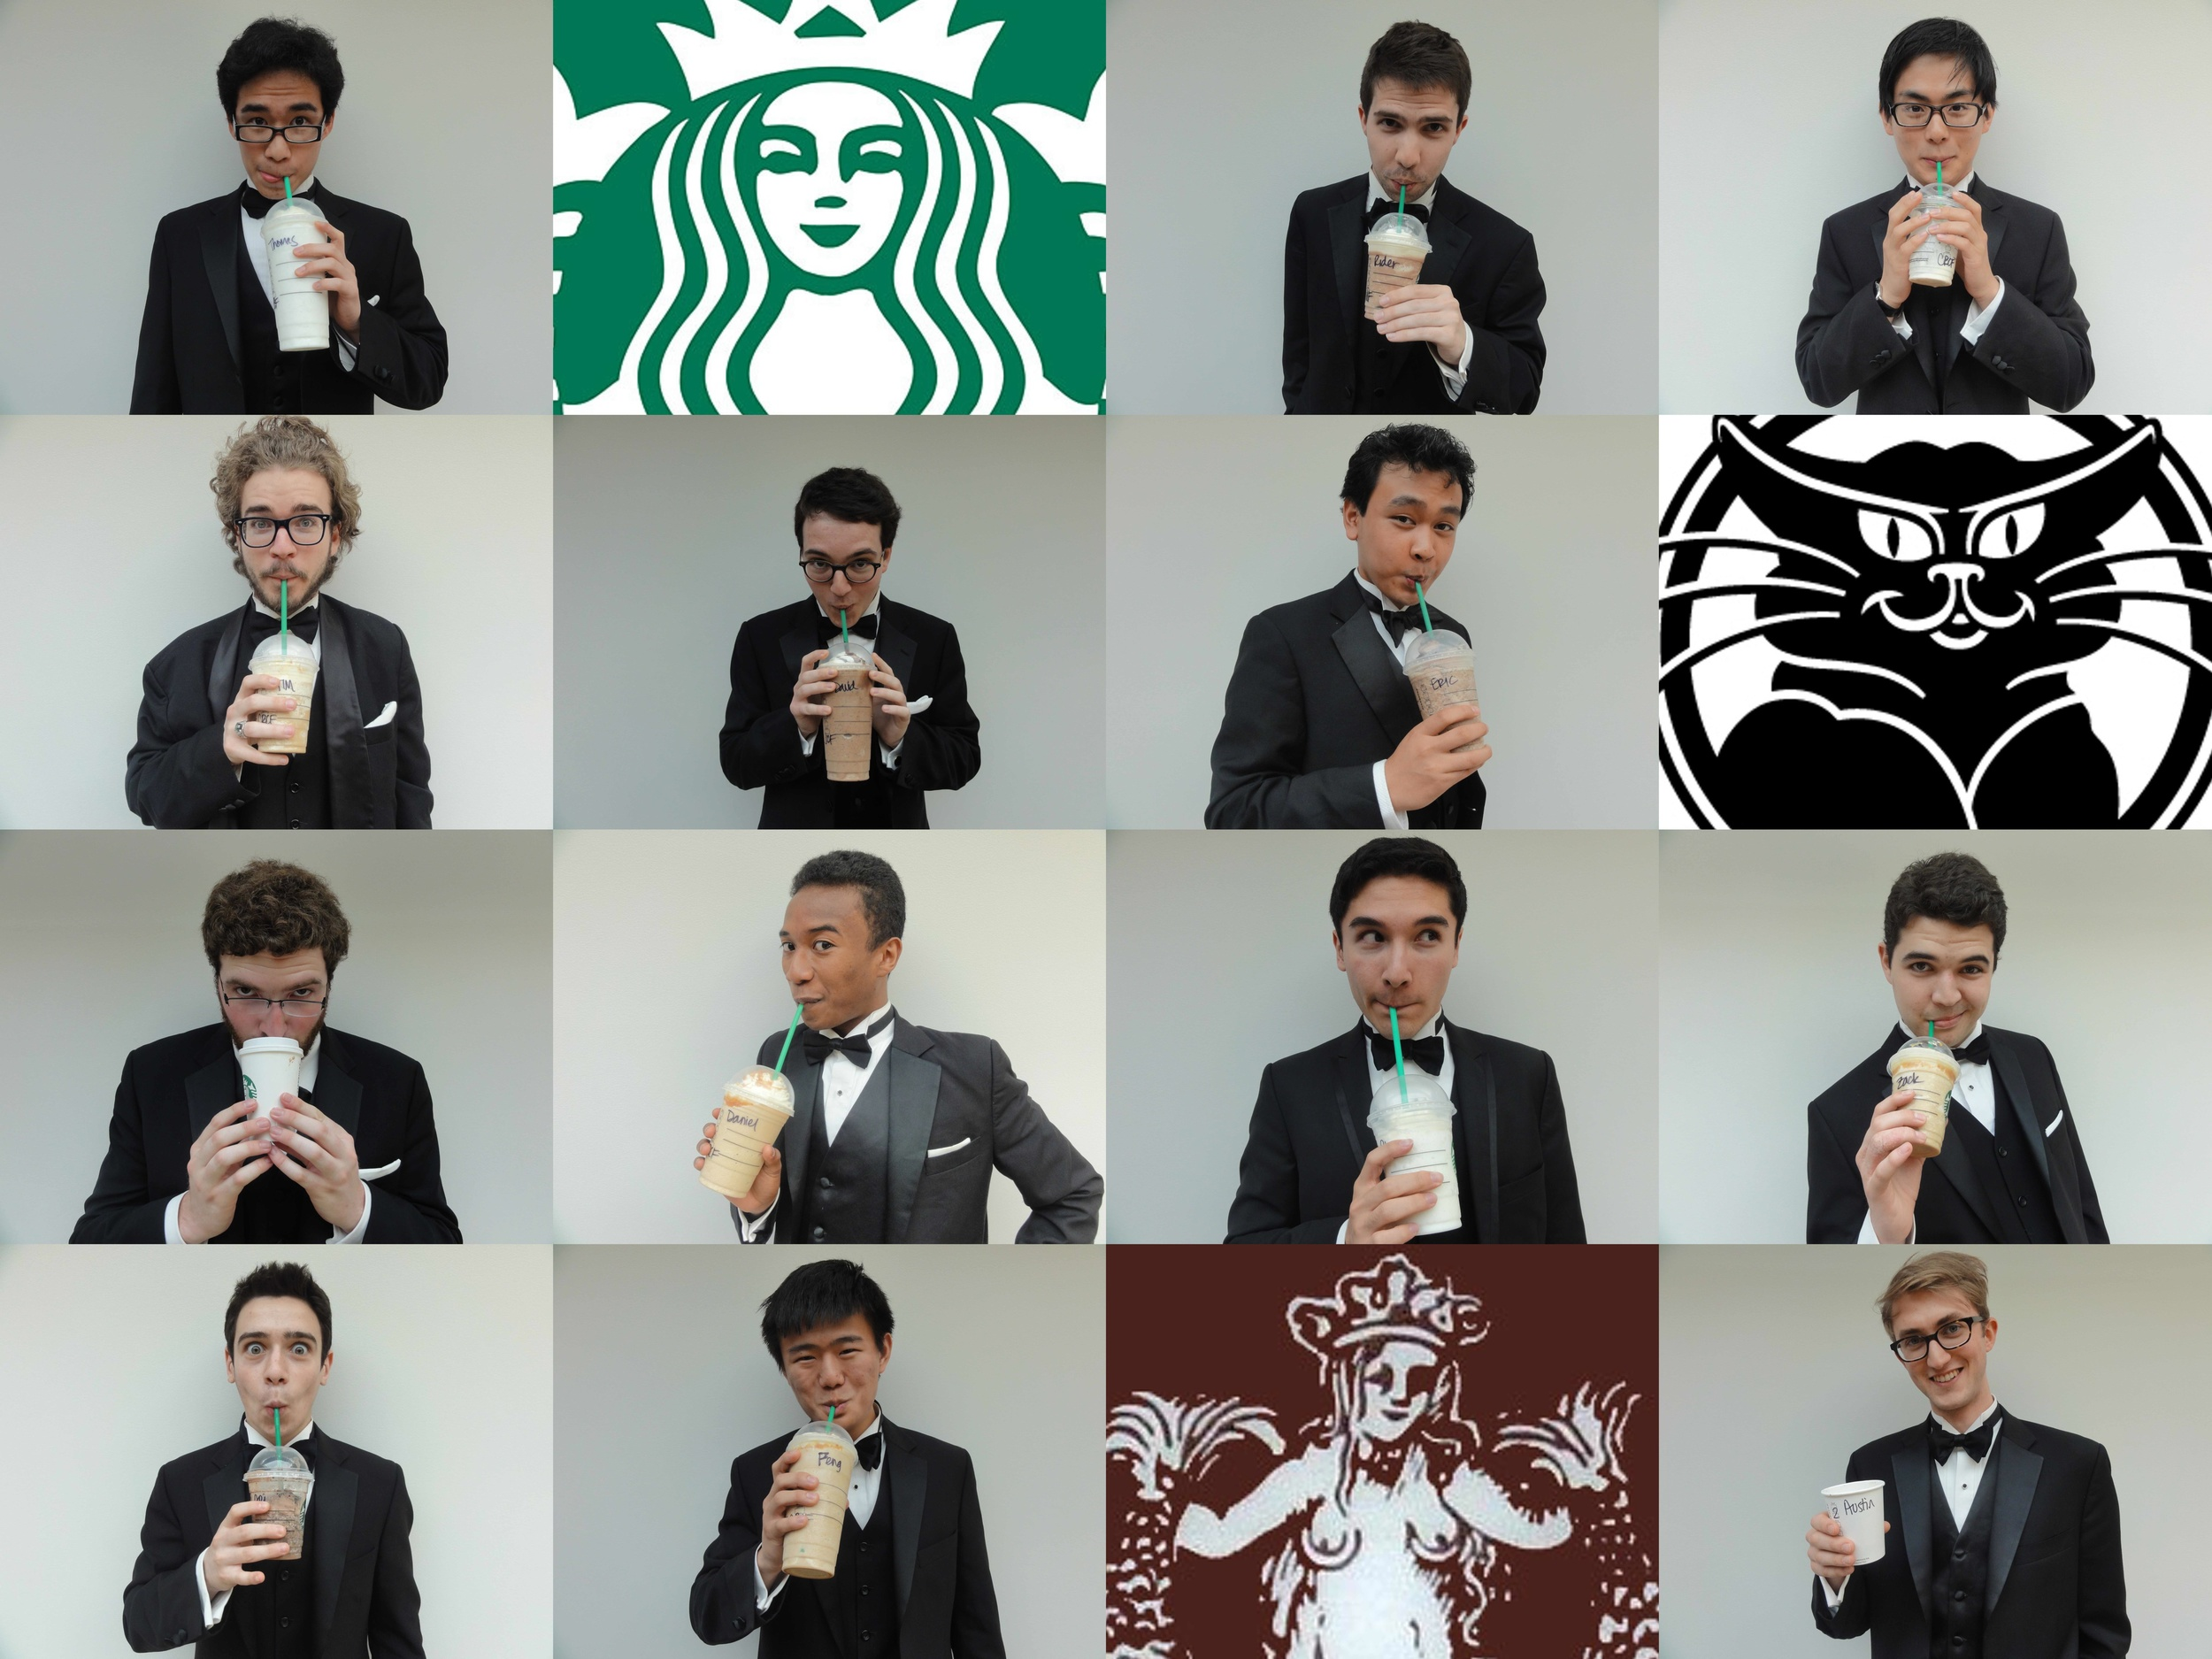 The Alley Cats express their love for Starbucks, in their own way